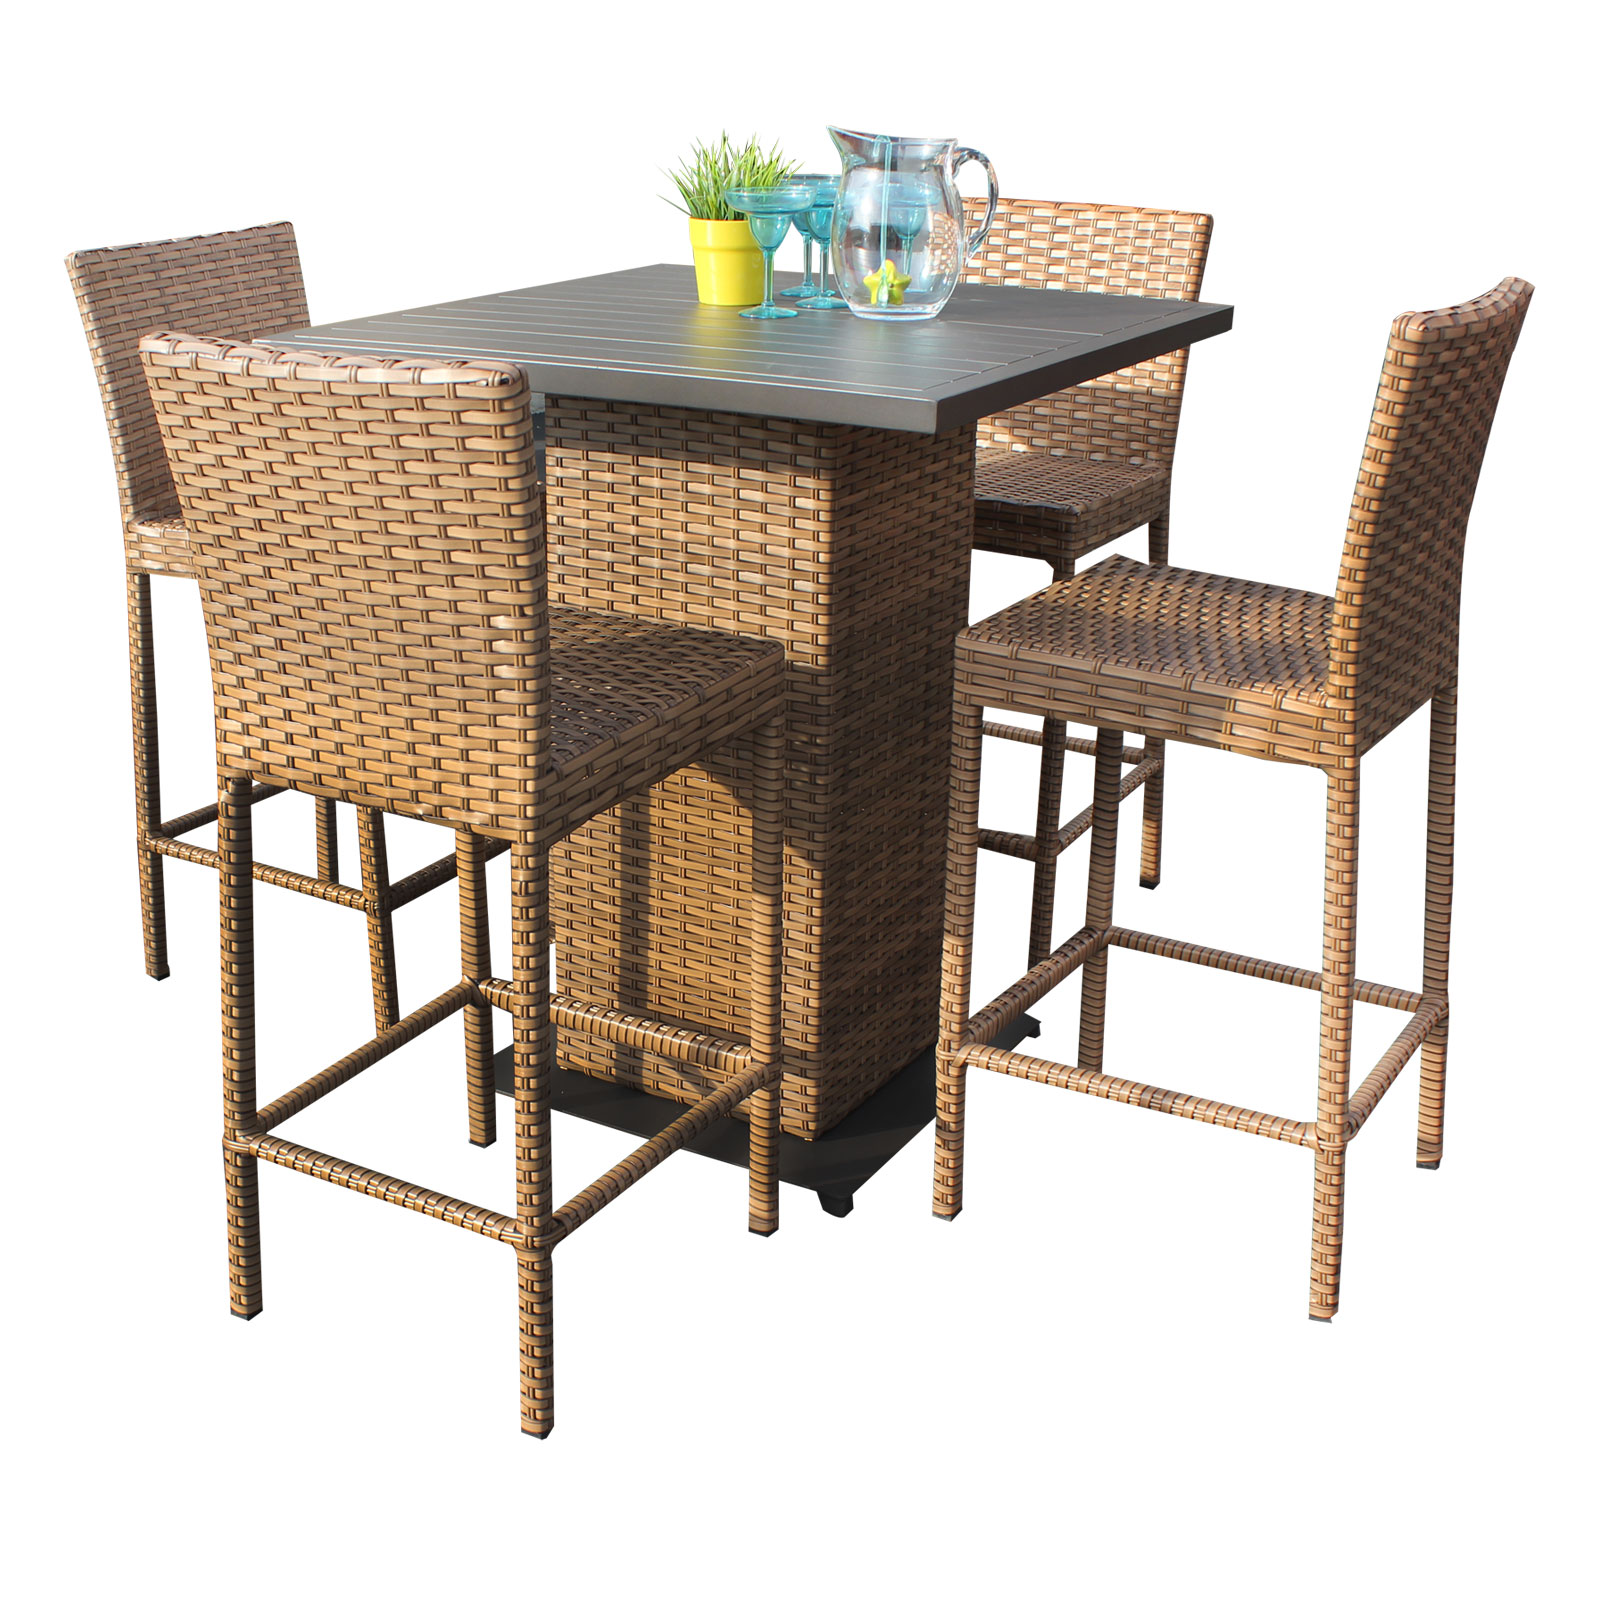 Tuscan Pub Table Set With Bar Stools 5 Piece Outdoor Wicker Patio Furniture by TK Classics